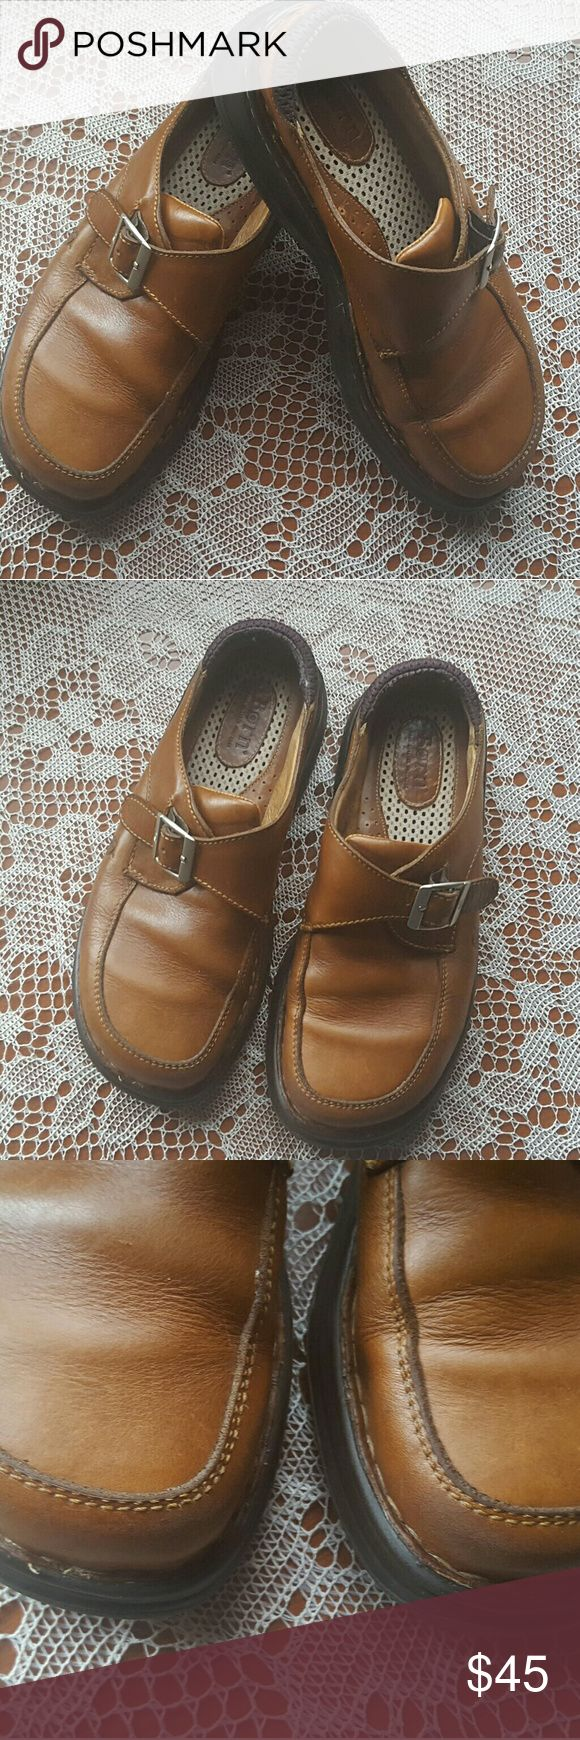 Born women's leather mules Born women's brown leather mules in good condition fuse scuffs on toe little wear on soles please see pictures above. Born Shoes Mules & Clogs